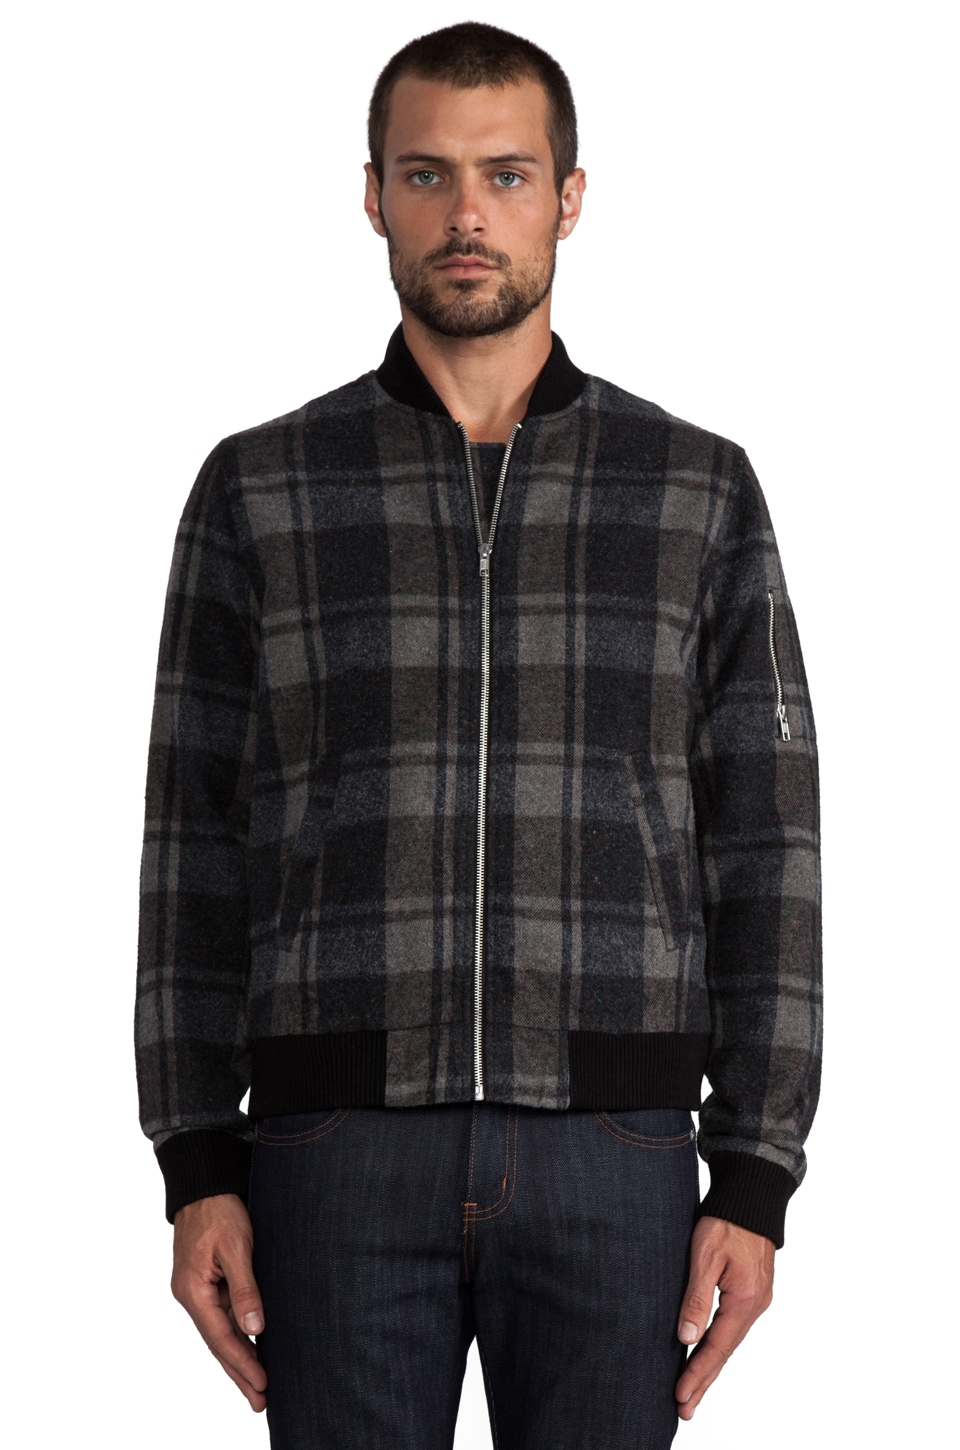 AG Adriano Goldschmied Bomber Jacket in Charcoal/Brown Plaid